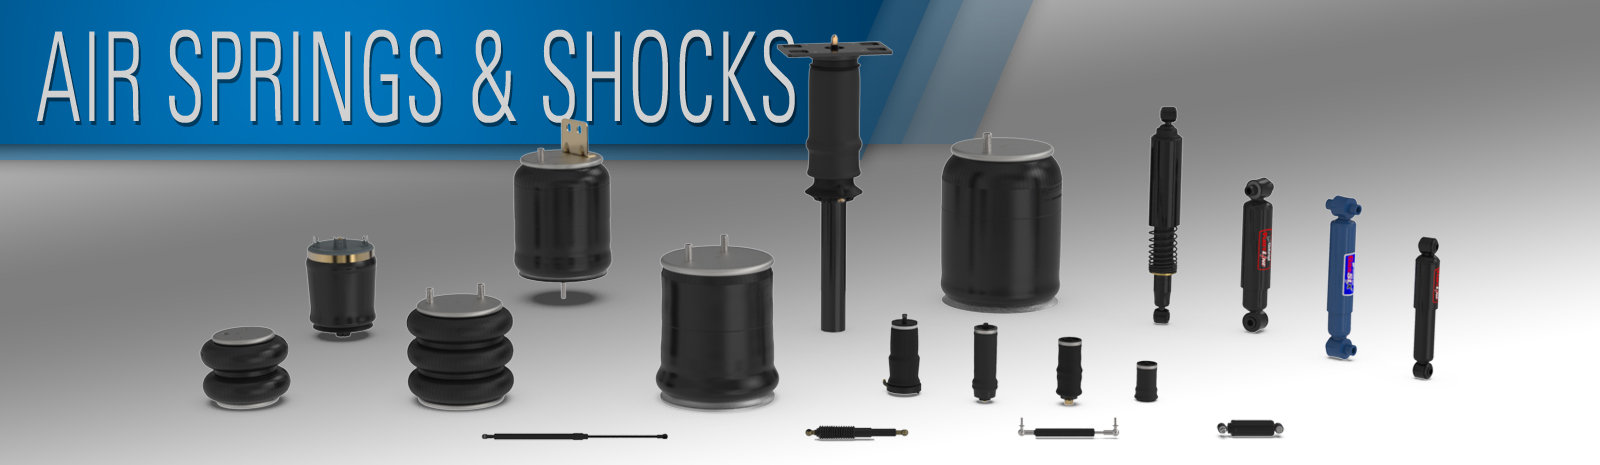 Air Spring & Shocks